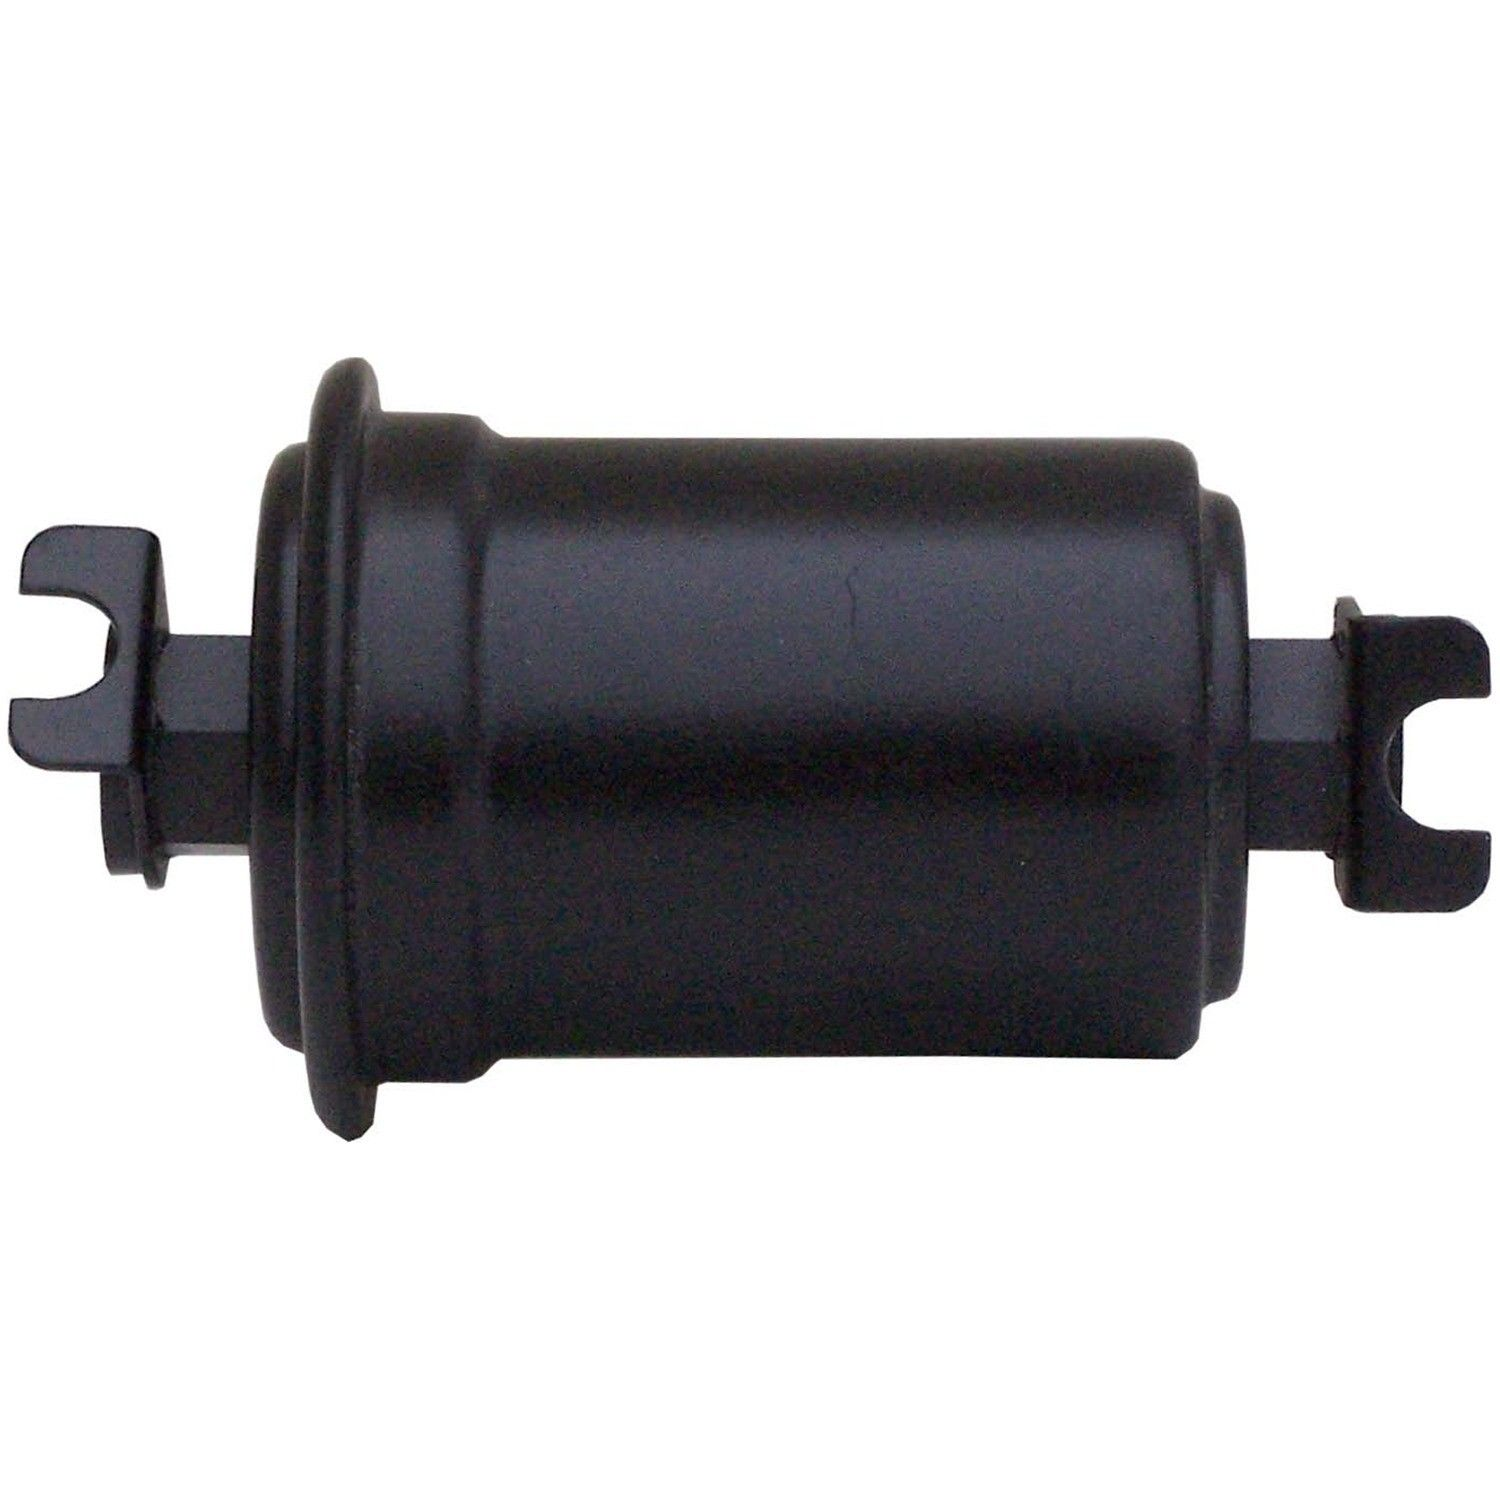 Herko Fuel Filter FAC01 For Acura Sterling Legend 825 827